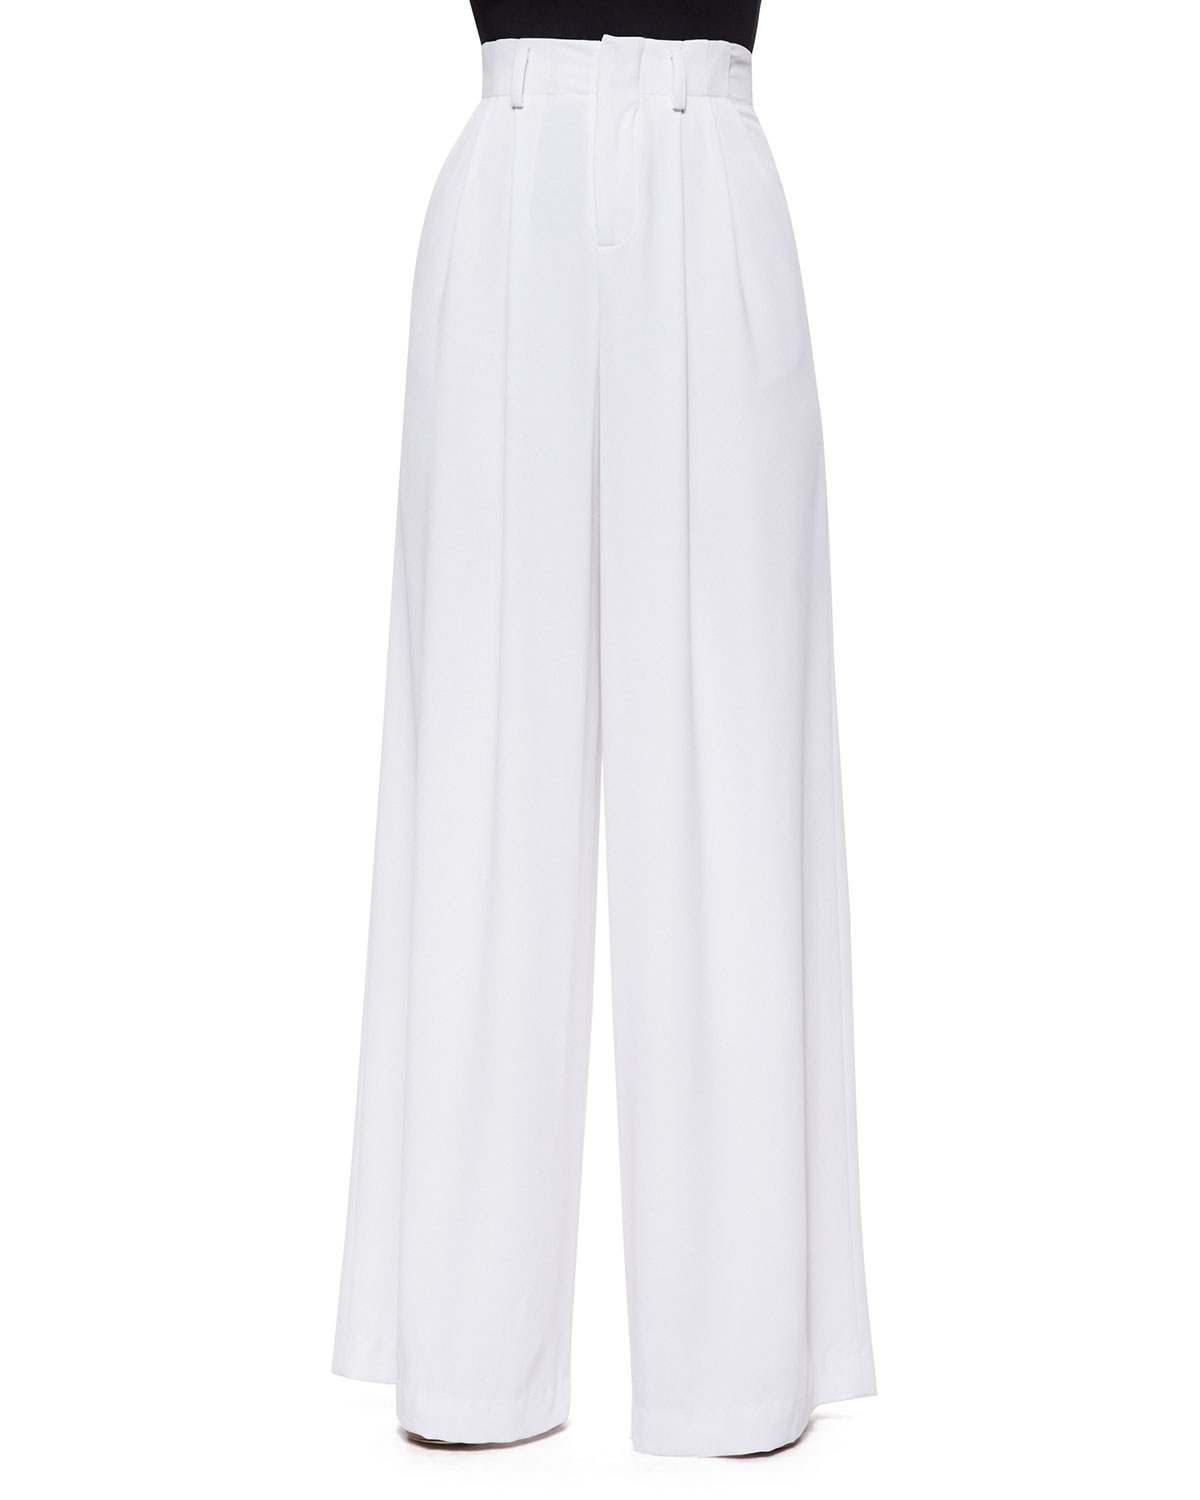 Alice   olivia High-waist Pleated Wide-leg Pants in White | Lyst